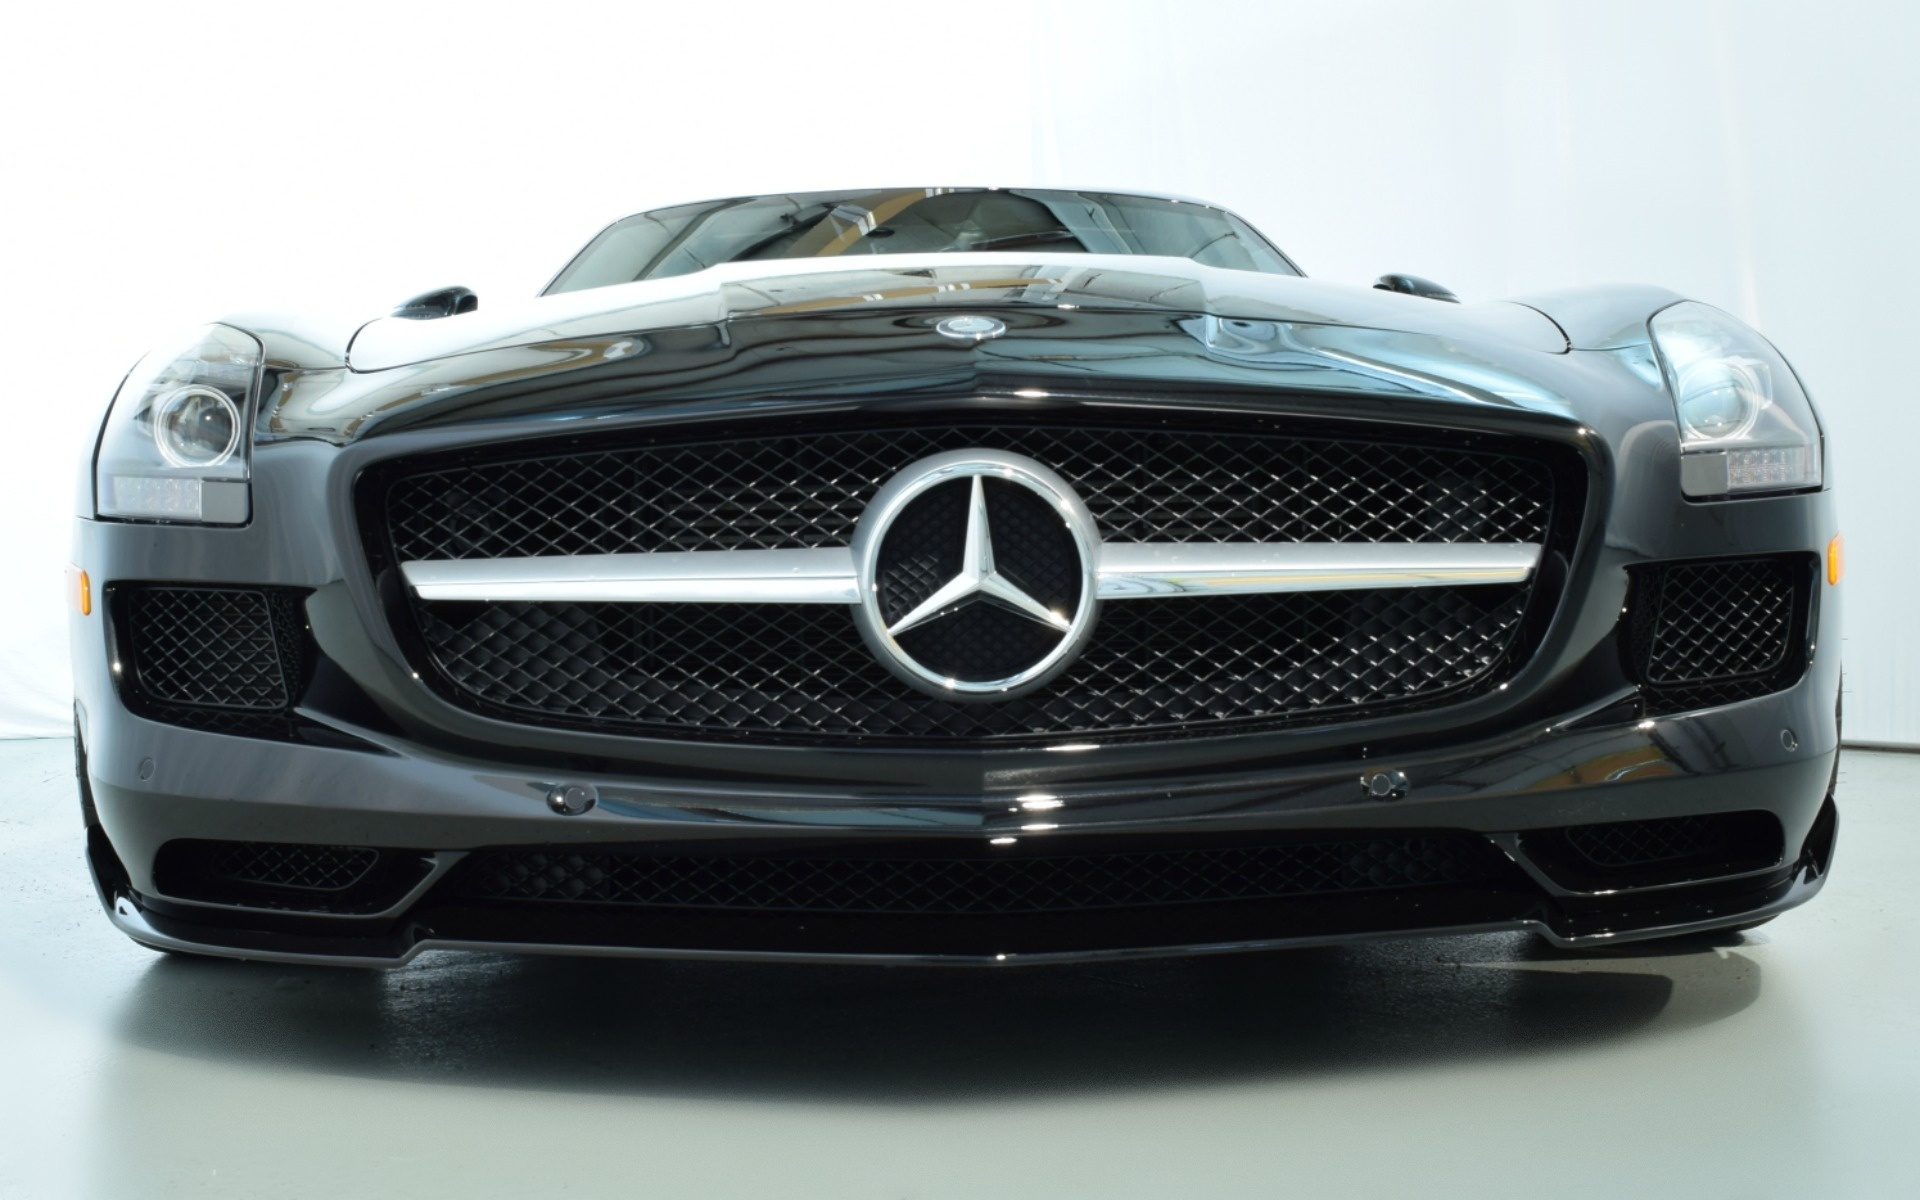 2012 mercedes benz sls amg for sale 209 900 1462655 for Mercedes benz sls amg convertible for sale